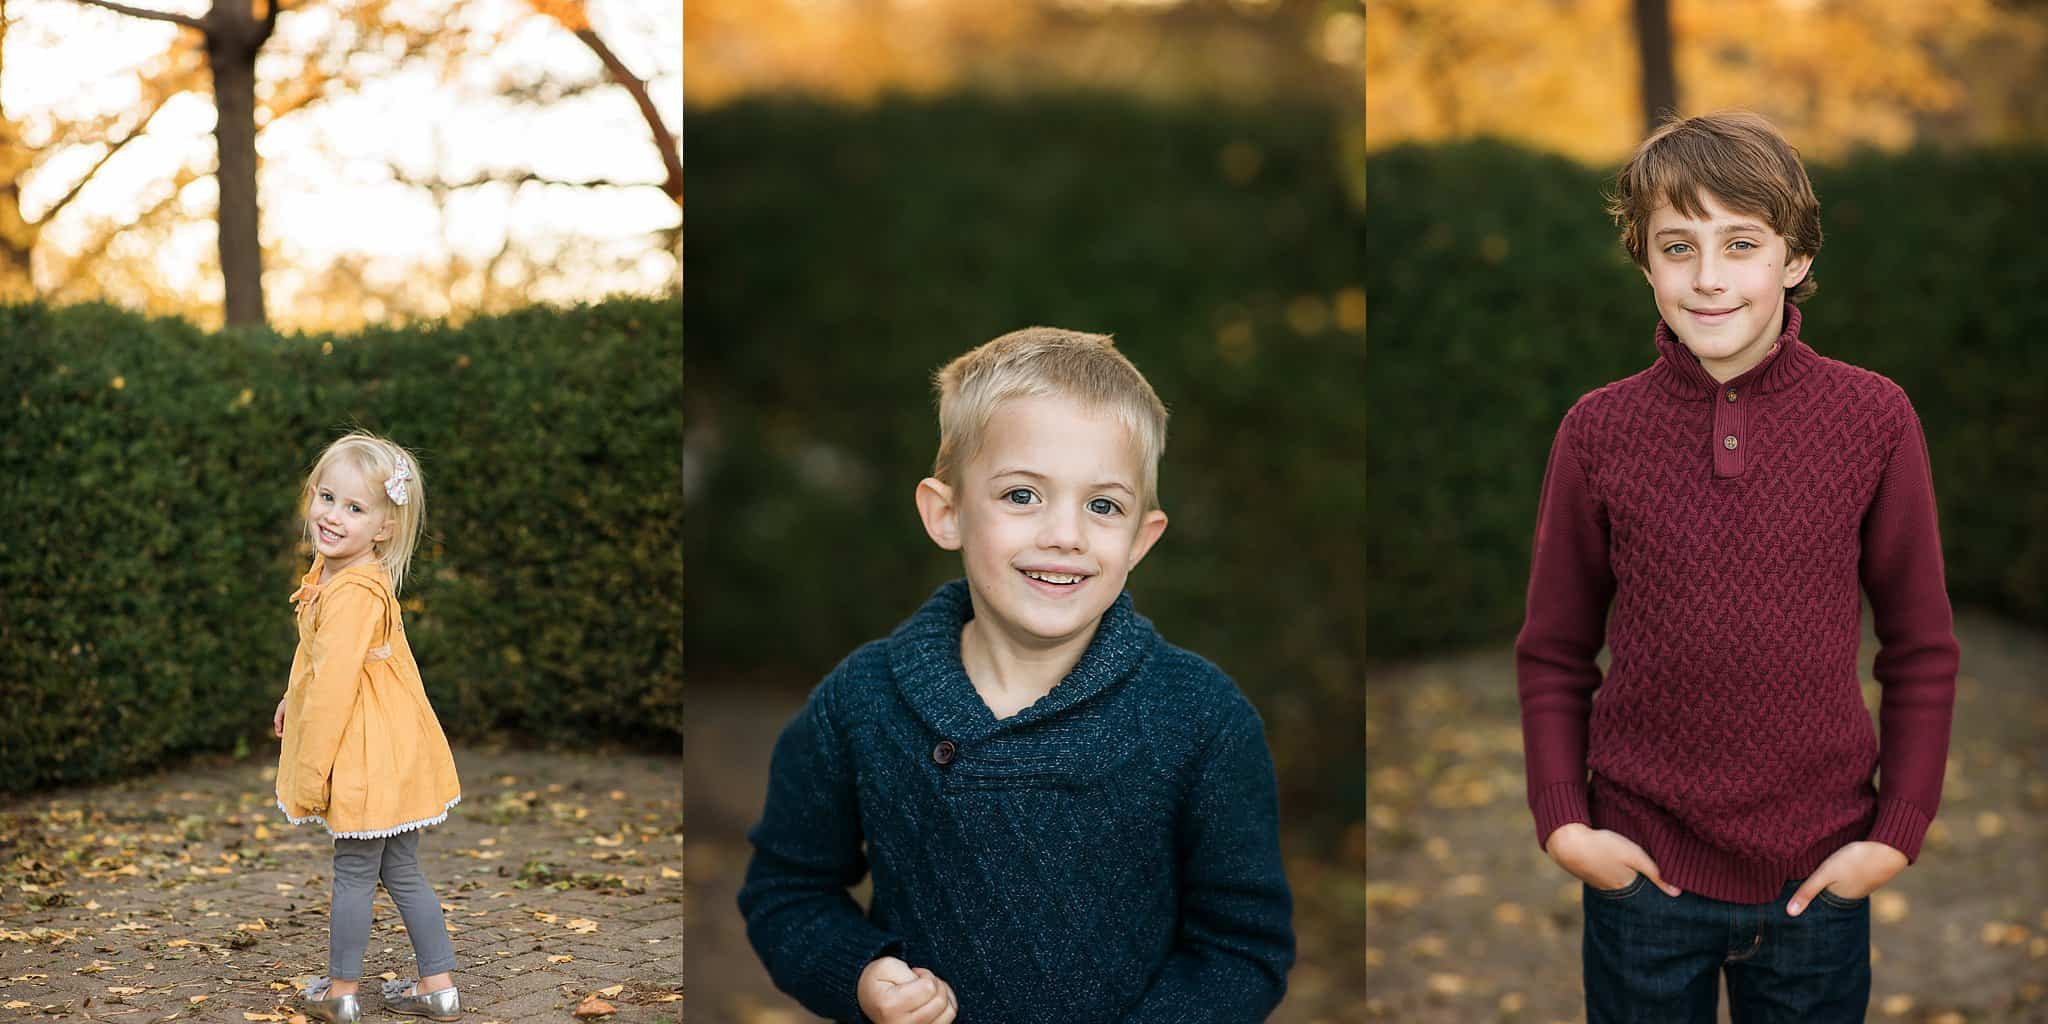 children smile at pictures with cincinnati photographer Sinchek at Ault Park